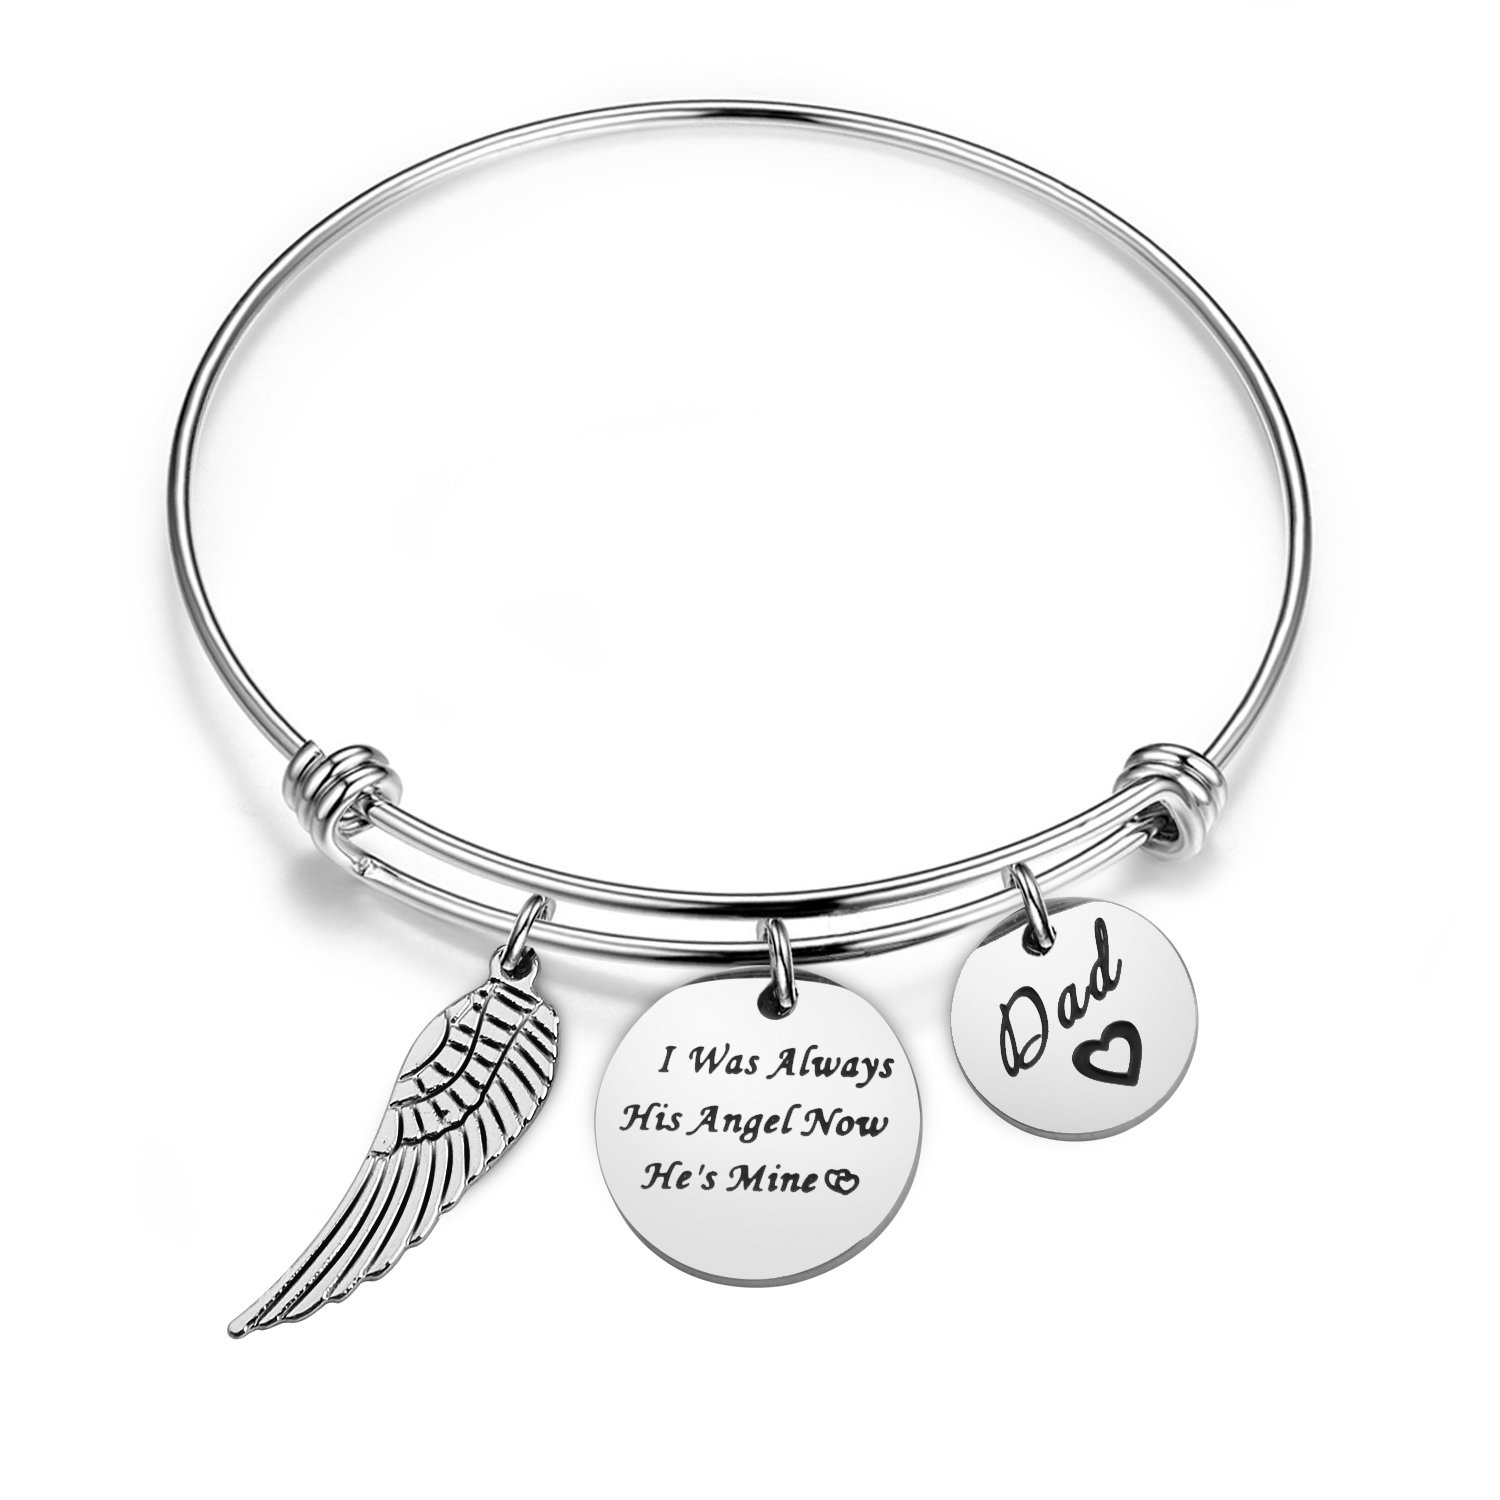 WUSUANED Memorial Bracelet I was Always His Angel Now He's Mine in Memory of Loved One Dad Sympathy Gift (in Memory of dad Bracelet) by WUSUANED